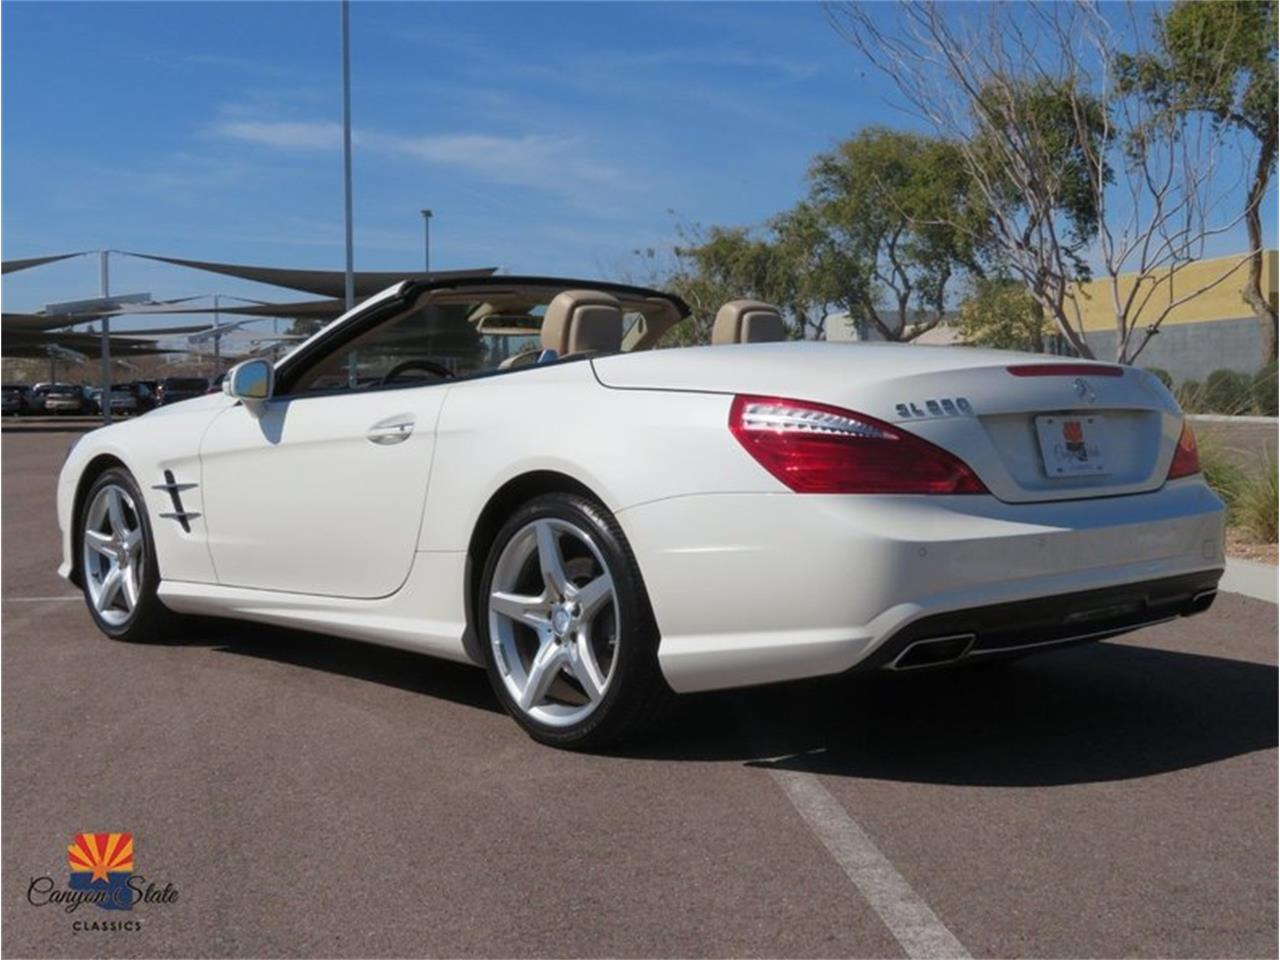 2013 Mercedes-Benz SL-Class for sale in Tempe, AZ – photo 17